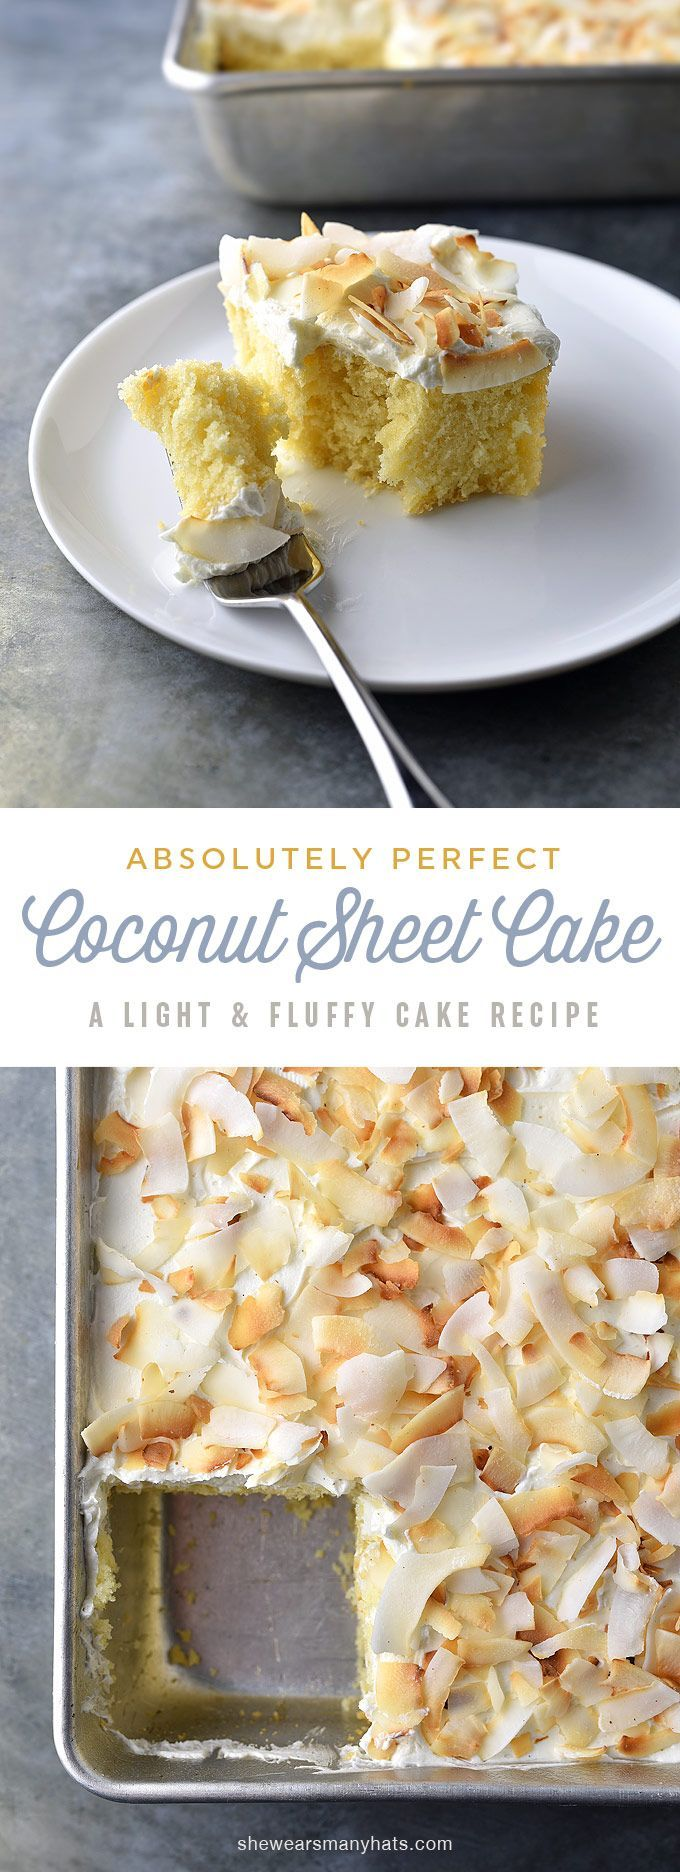 Perfect Coconut Sheet Cake Recipe | http://shewearsmanyhats.com